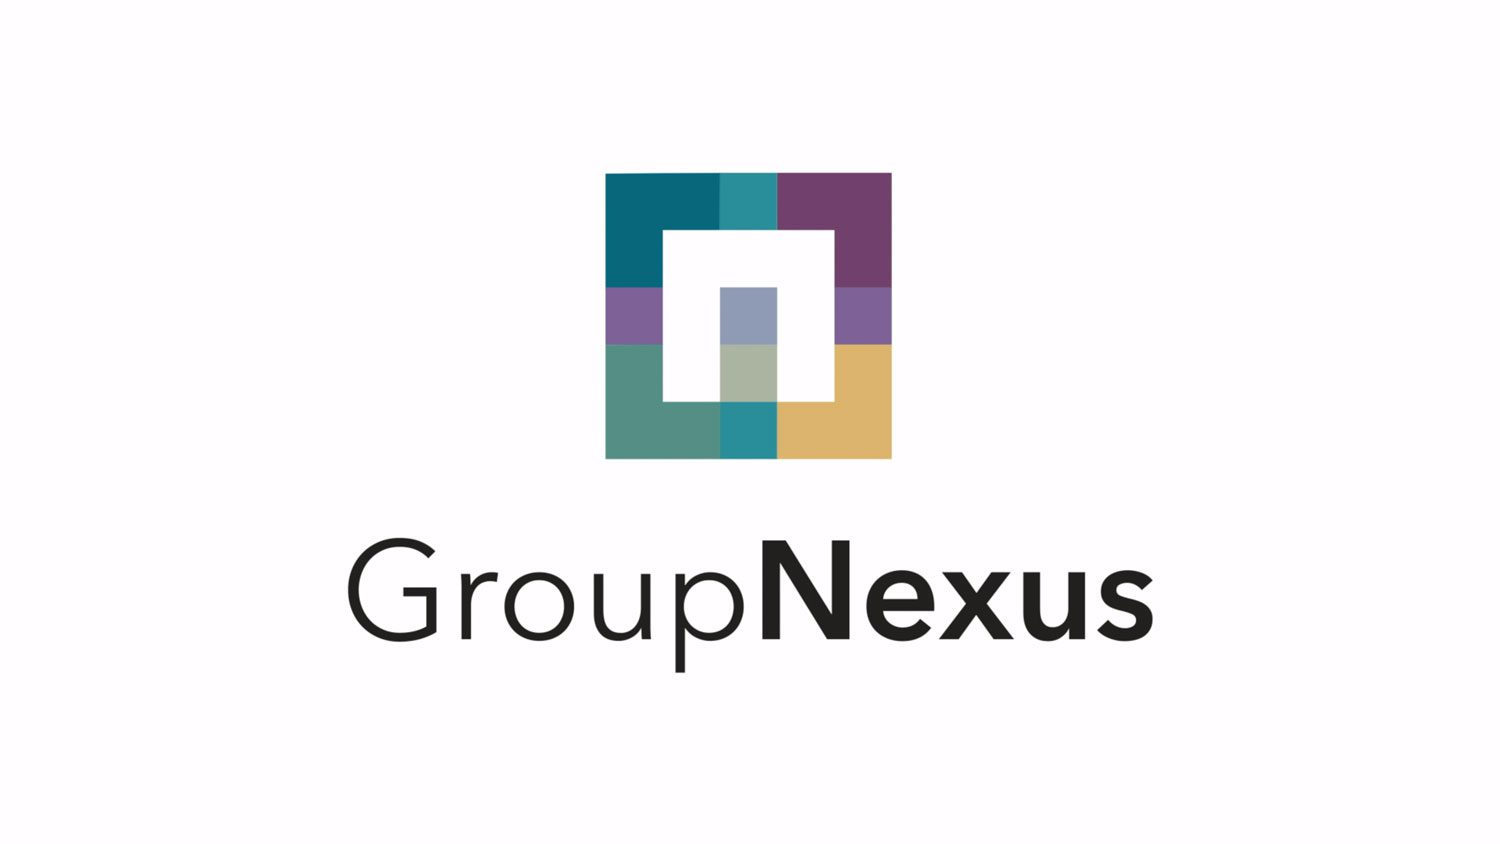 GroupNexus logo - business to business branding